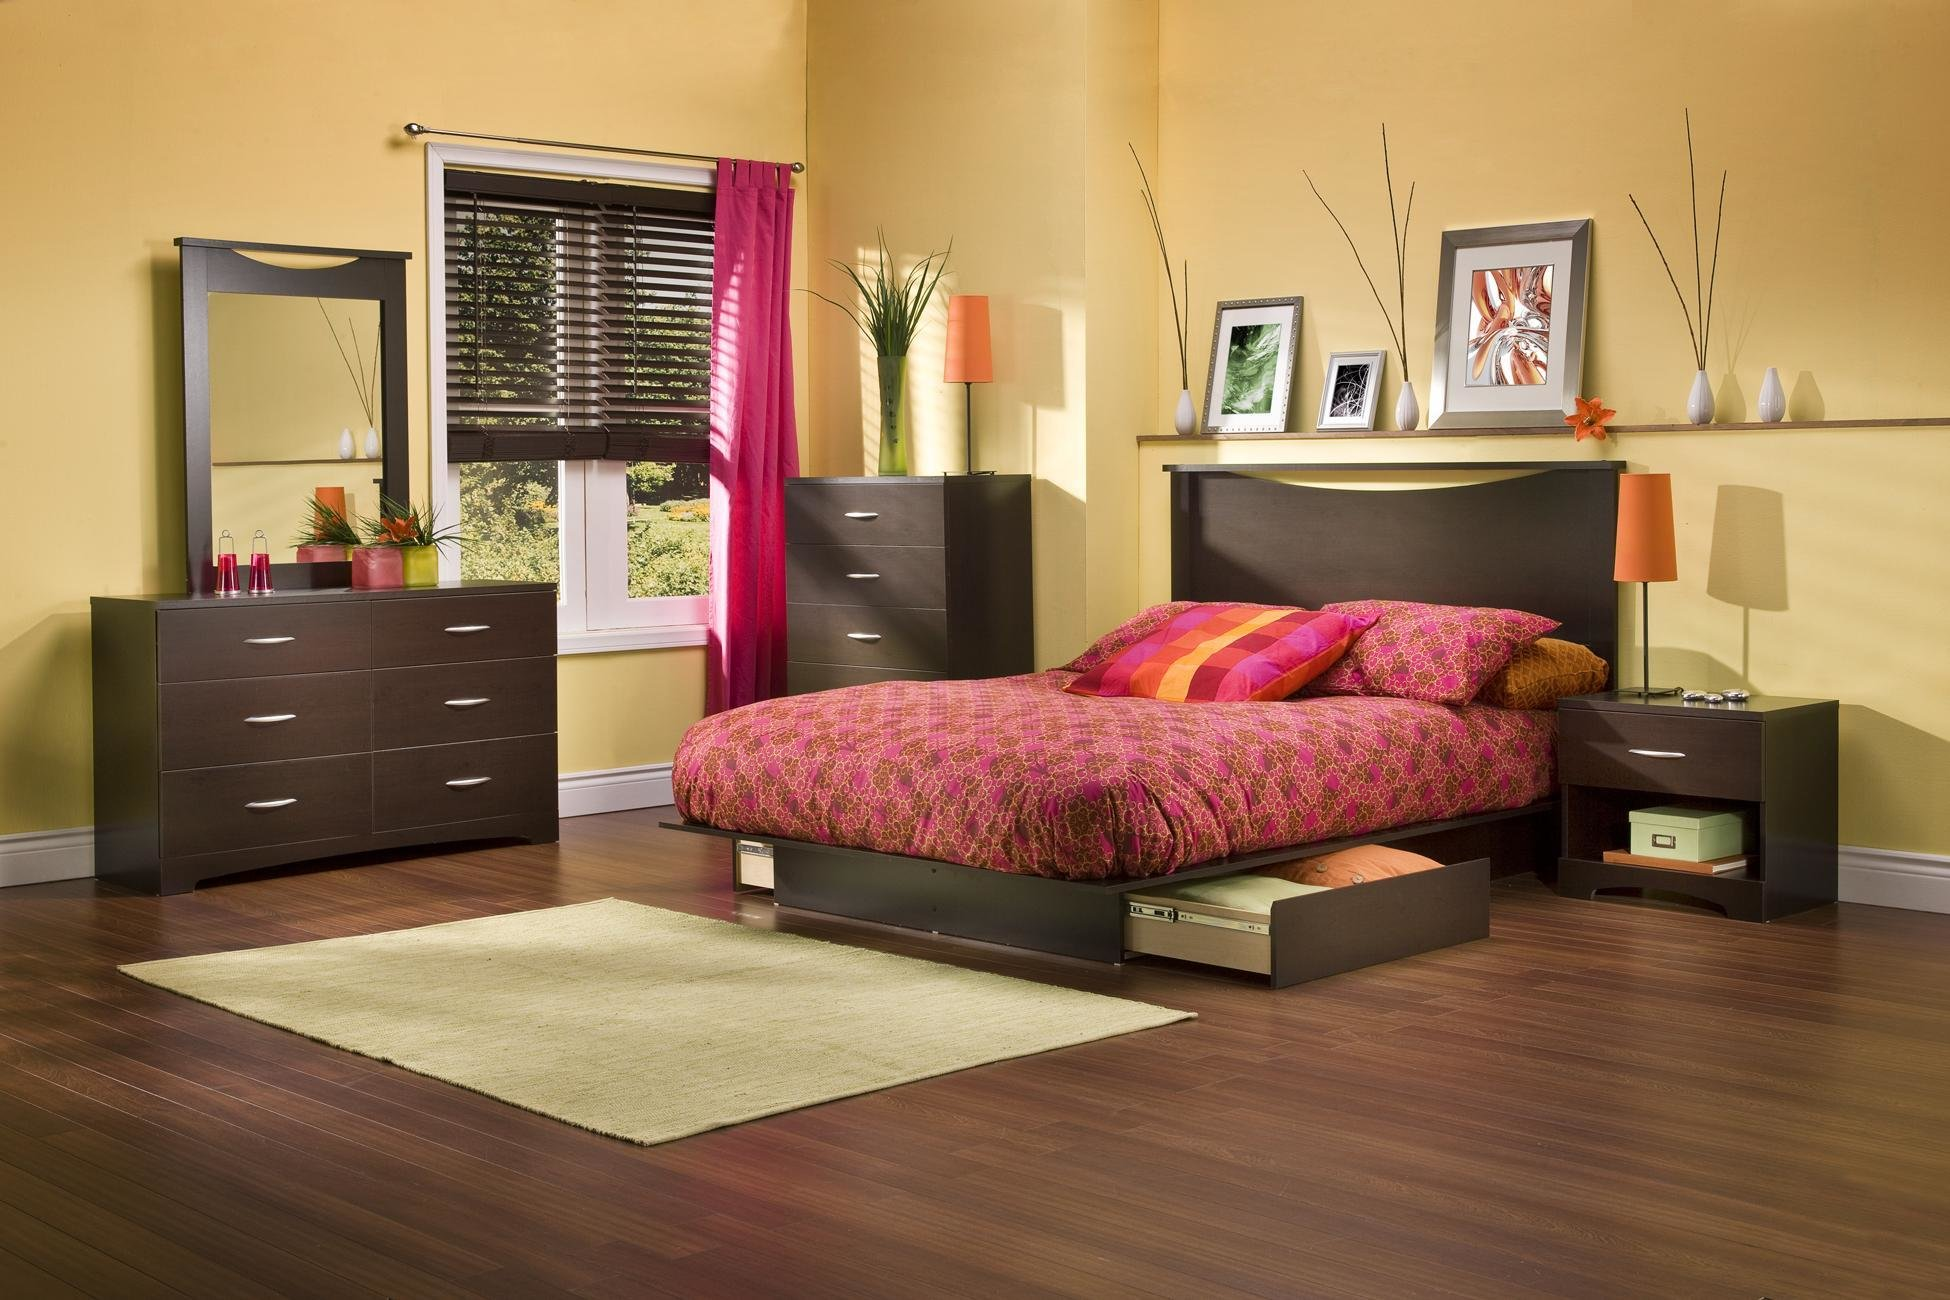 Best Furniture Home Goods Appliances Athletic Gear Fitness With Pictures